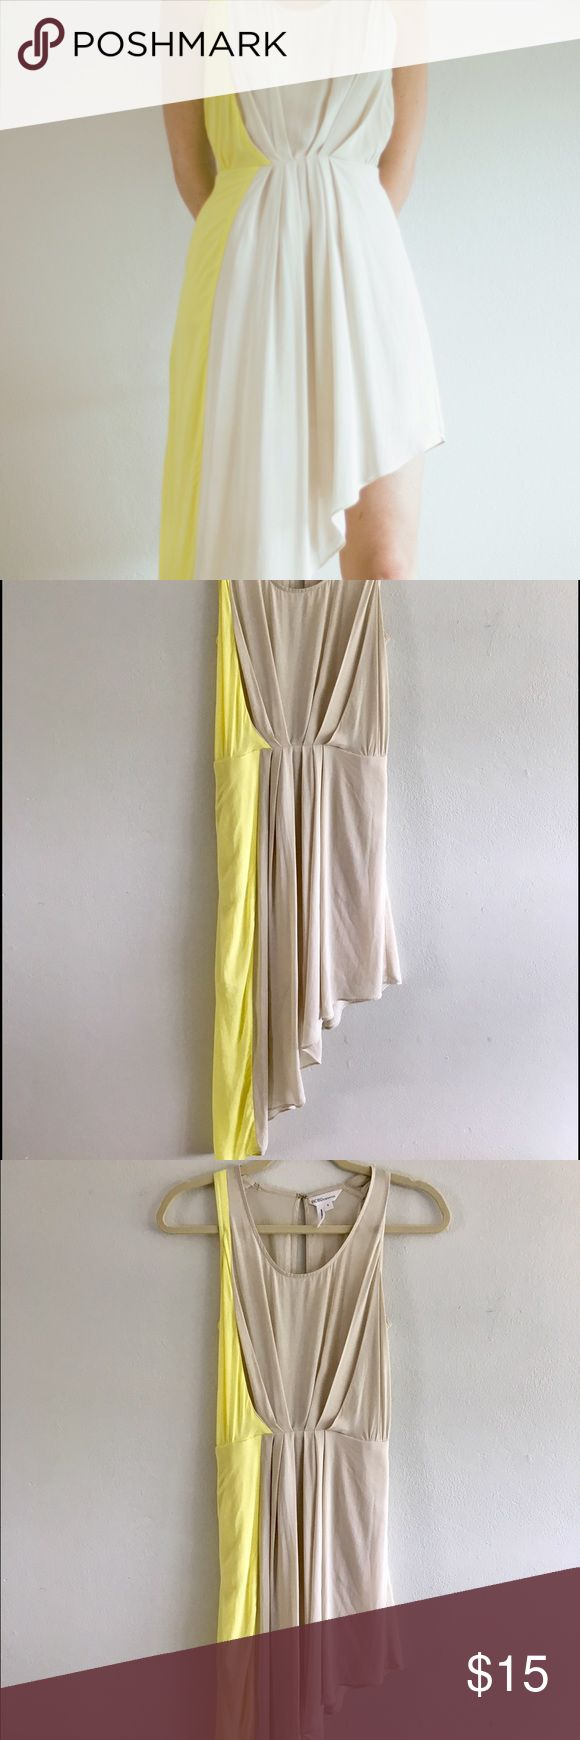 Lovely BCGG yellow and beige dress This dress has a half leg and a yellow line on the side is Effortless to dress up or down. Can take you from work to the weekend. It has an open back to give a sexy and elegant look. This fabric is soft, smooth, light and loose. 100% Rayon. Easy fit. You can wear it everywhere. Very Good Condition. Size: Small BCBGeneration Dresses High Low